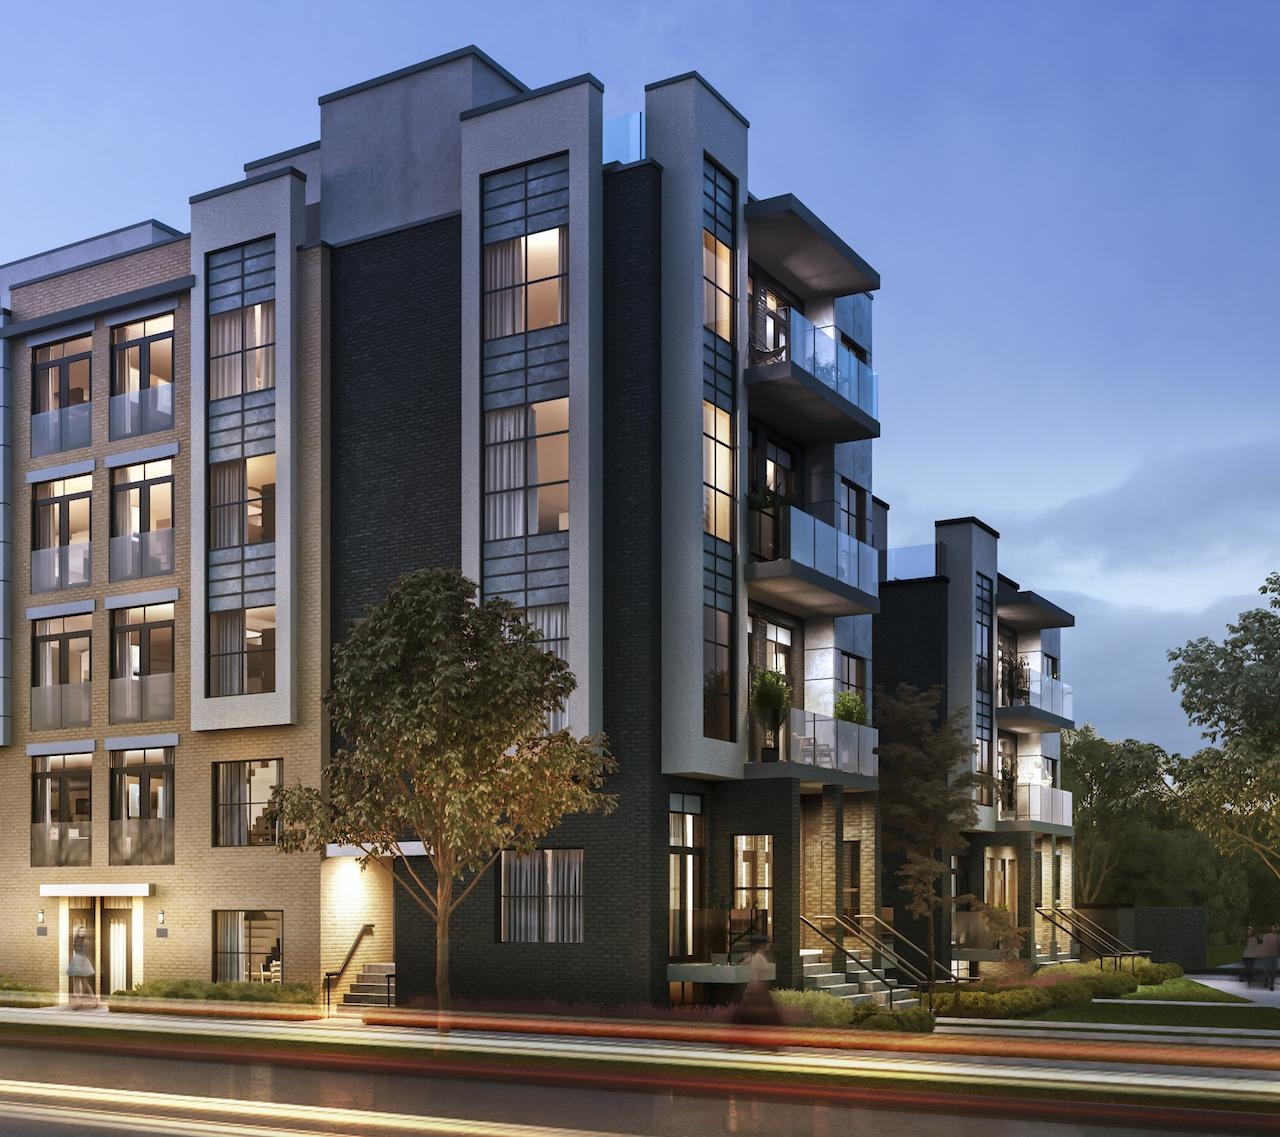 Exterior side-view rendering of Clanton Park Towns in the evening.